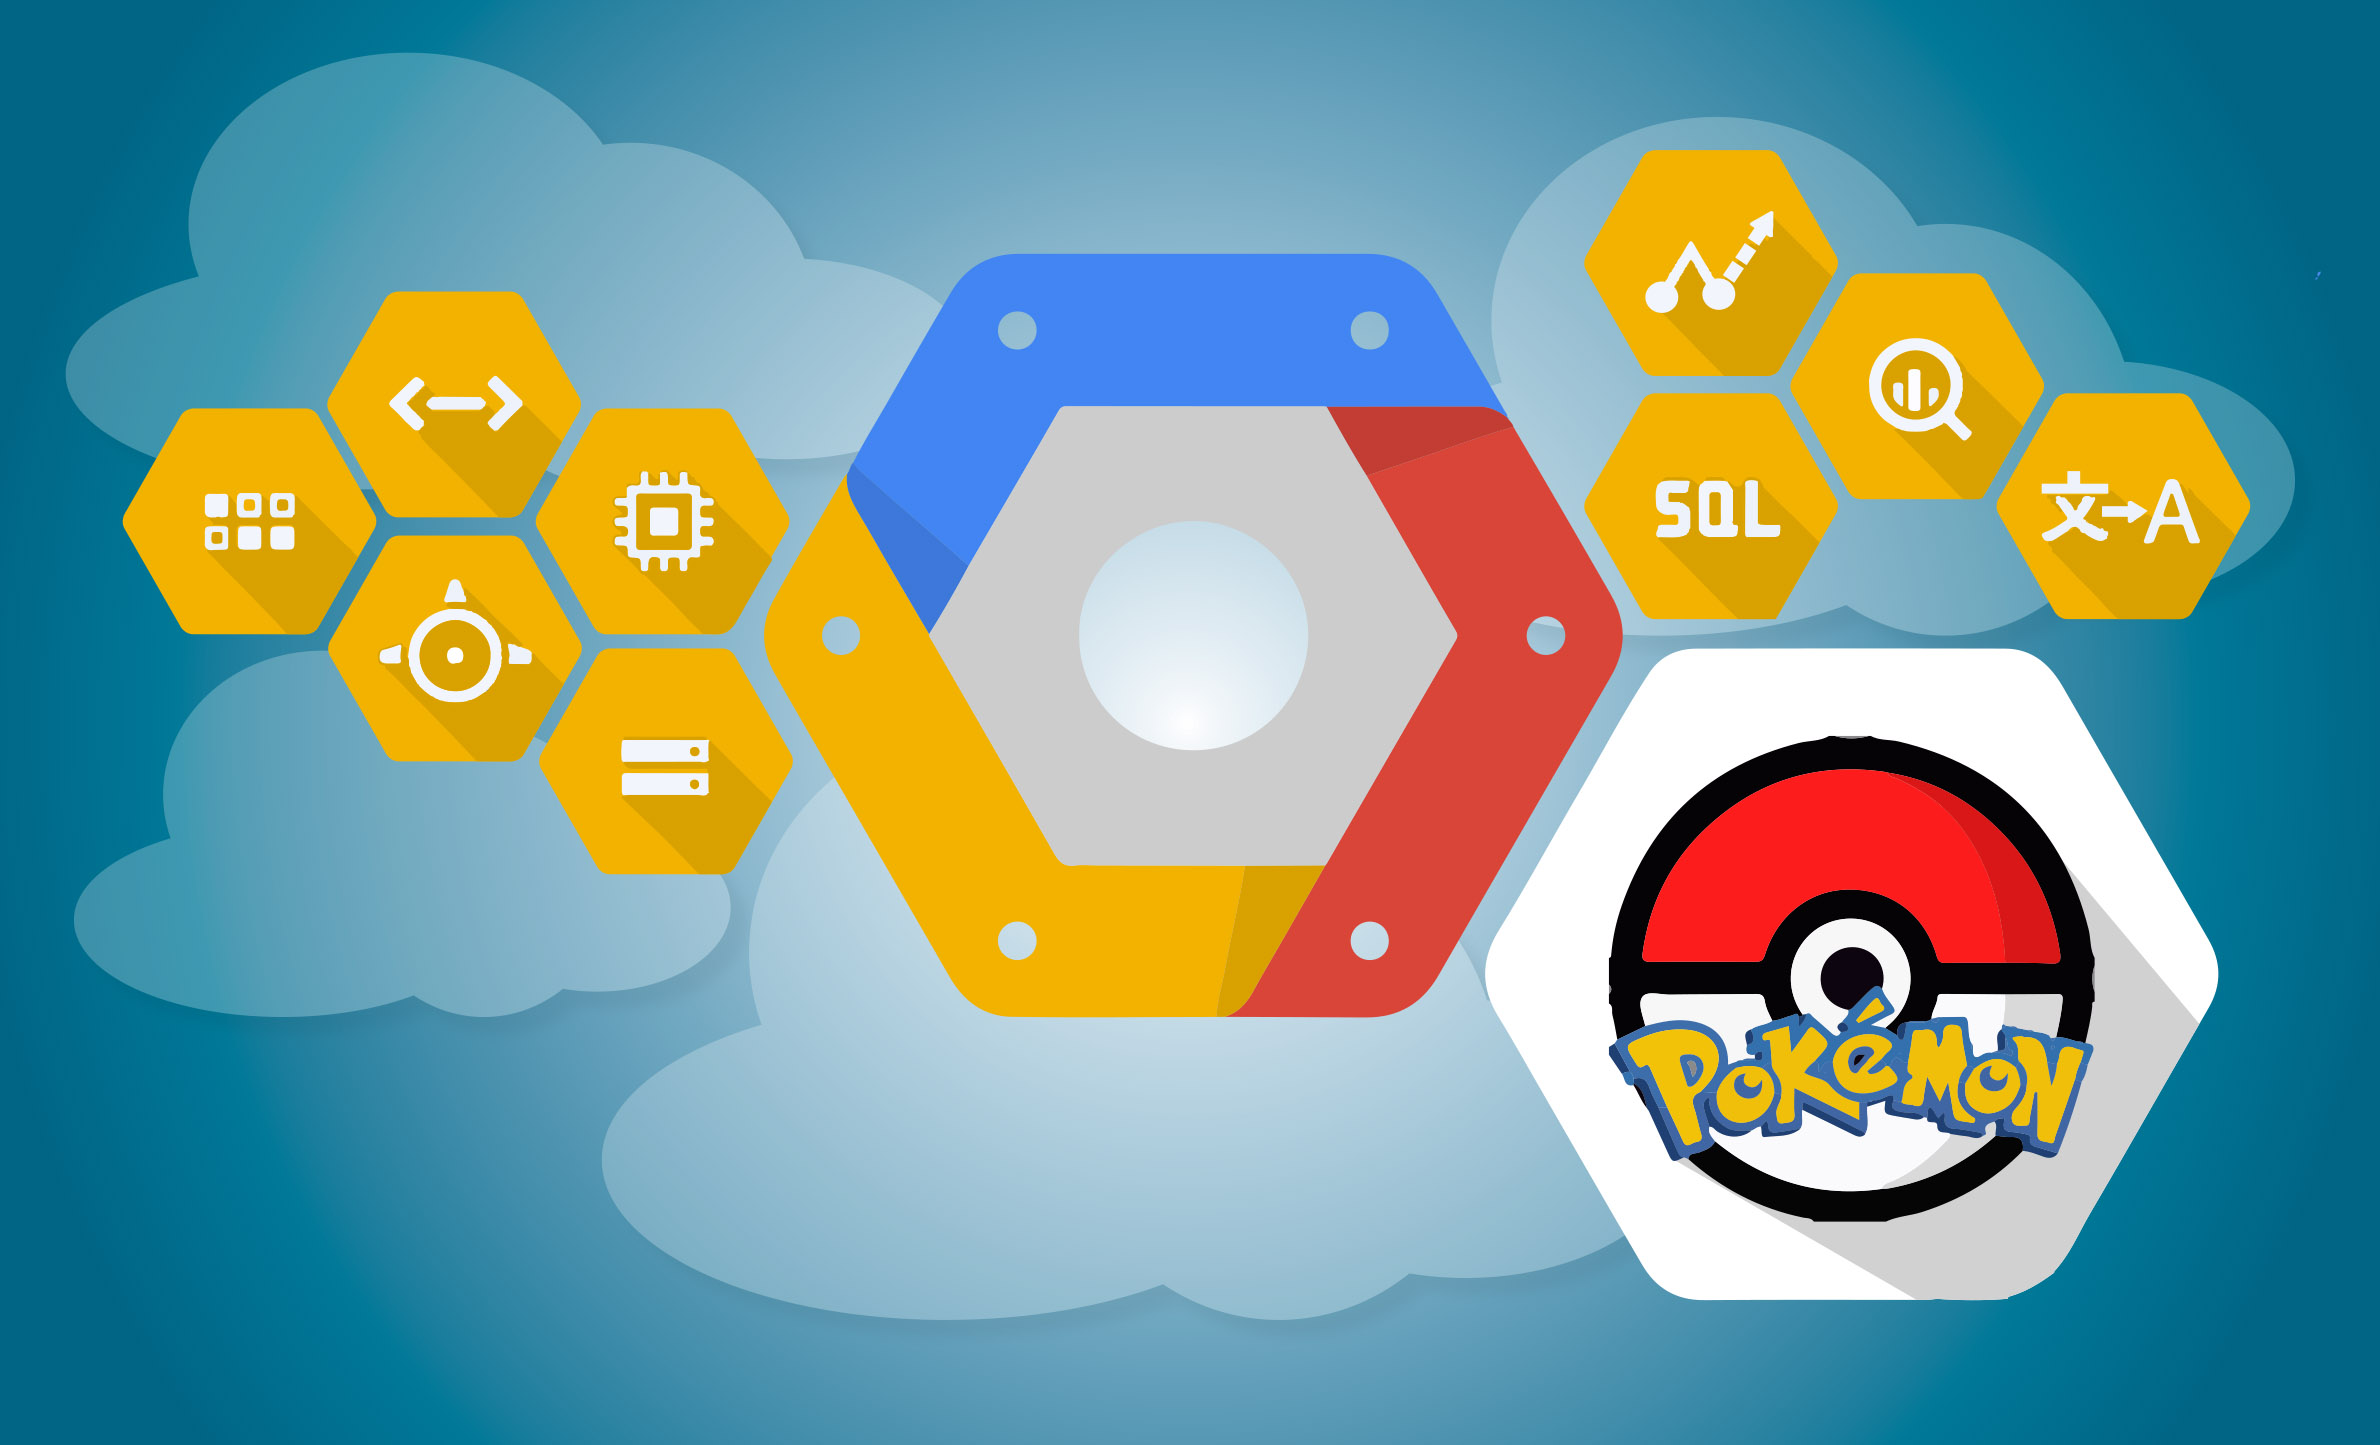 Why we use the same Google Cloud Platform as Pokémon GO